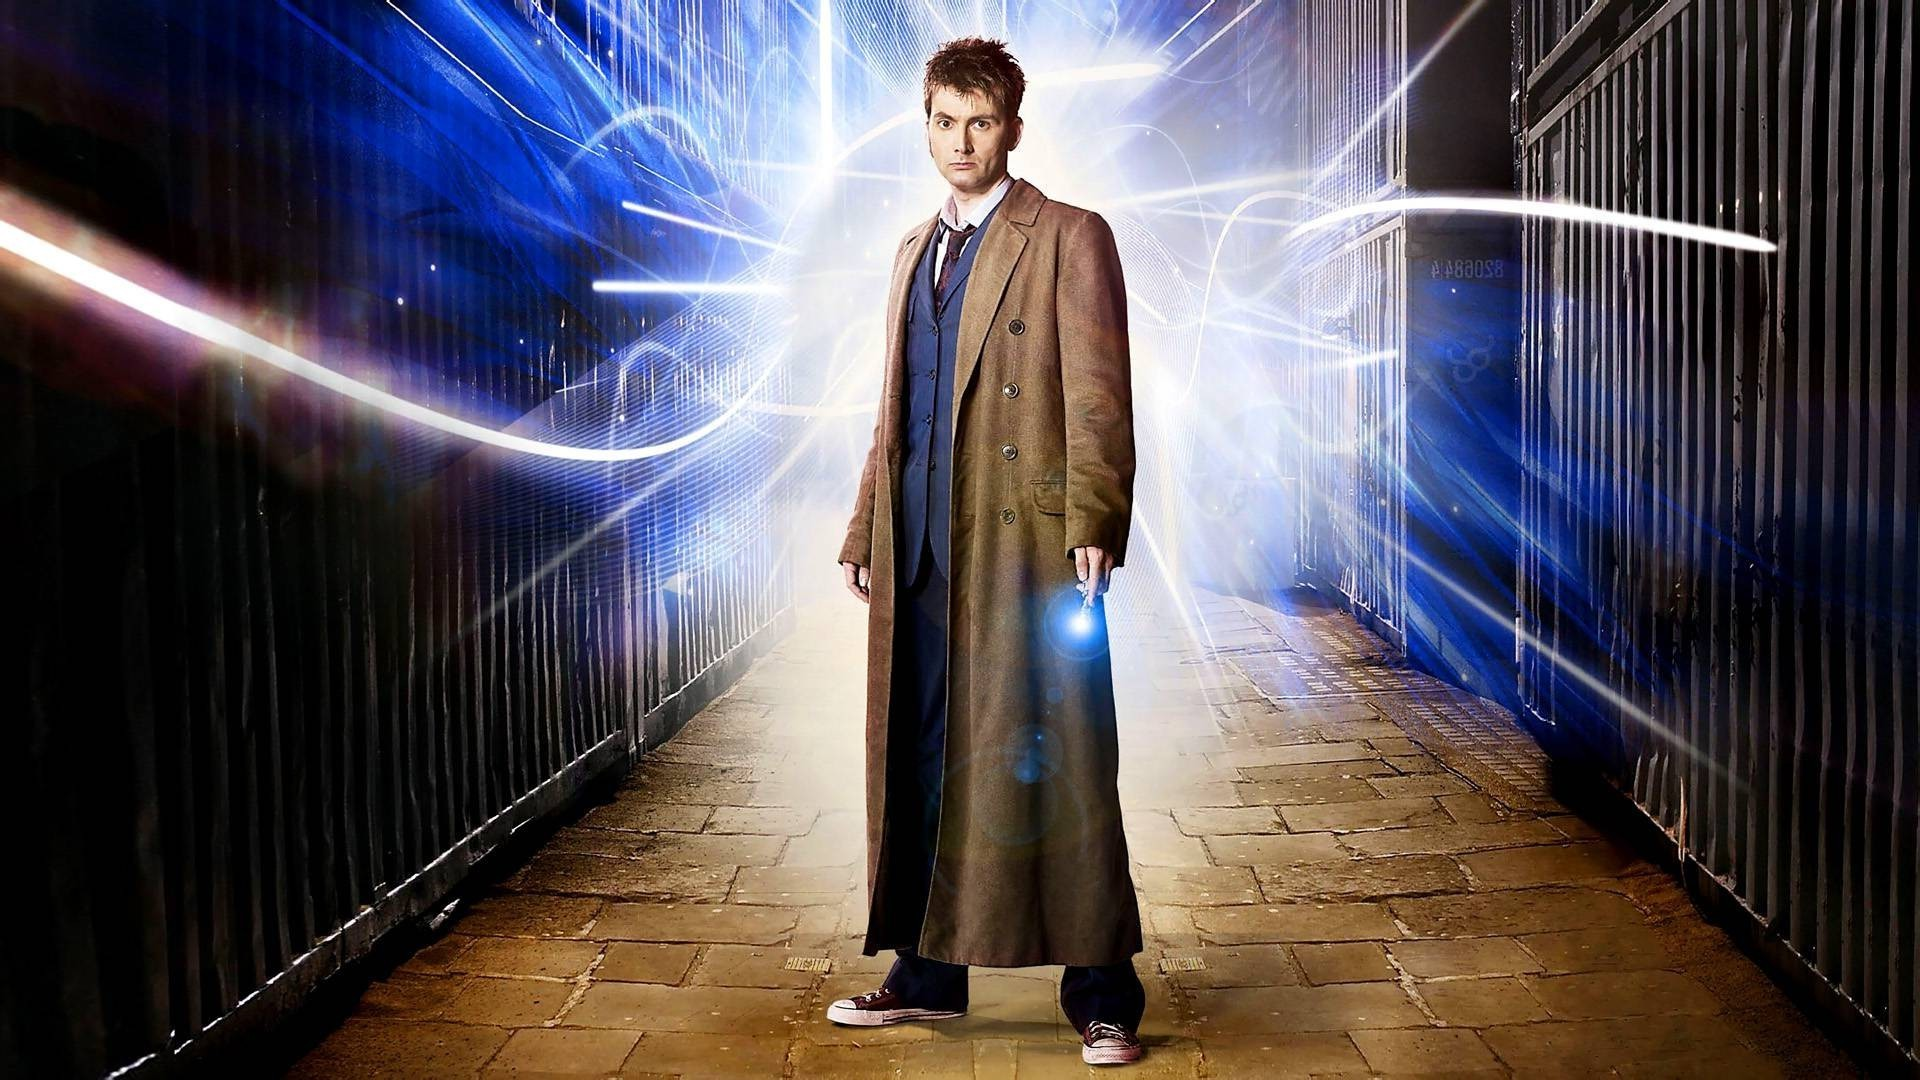 David Tennant Doctor Who Wallpaper (62+ Images